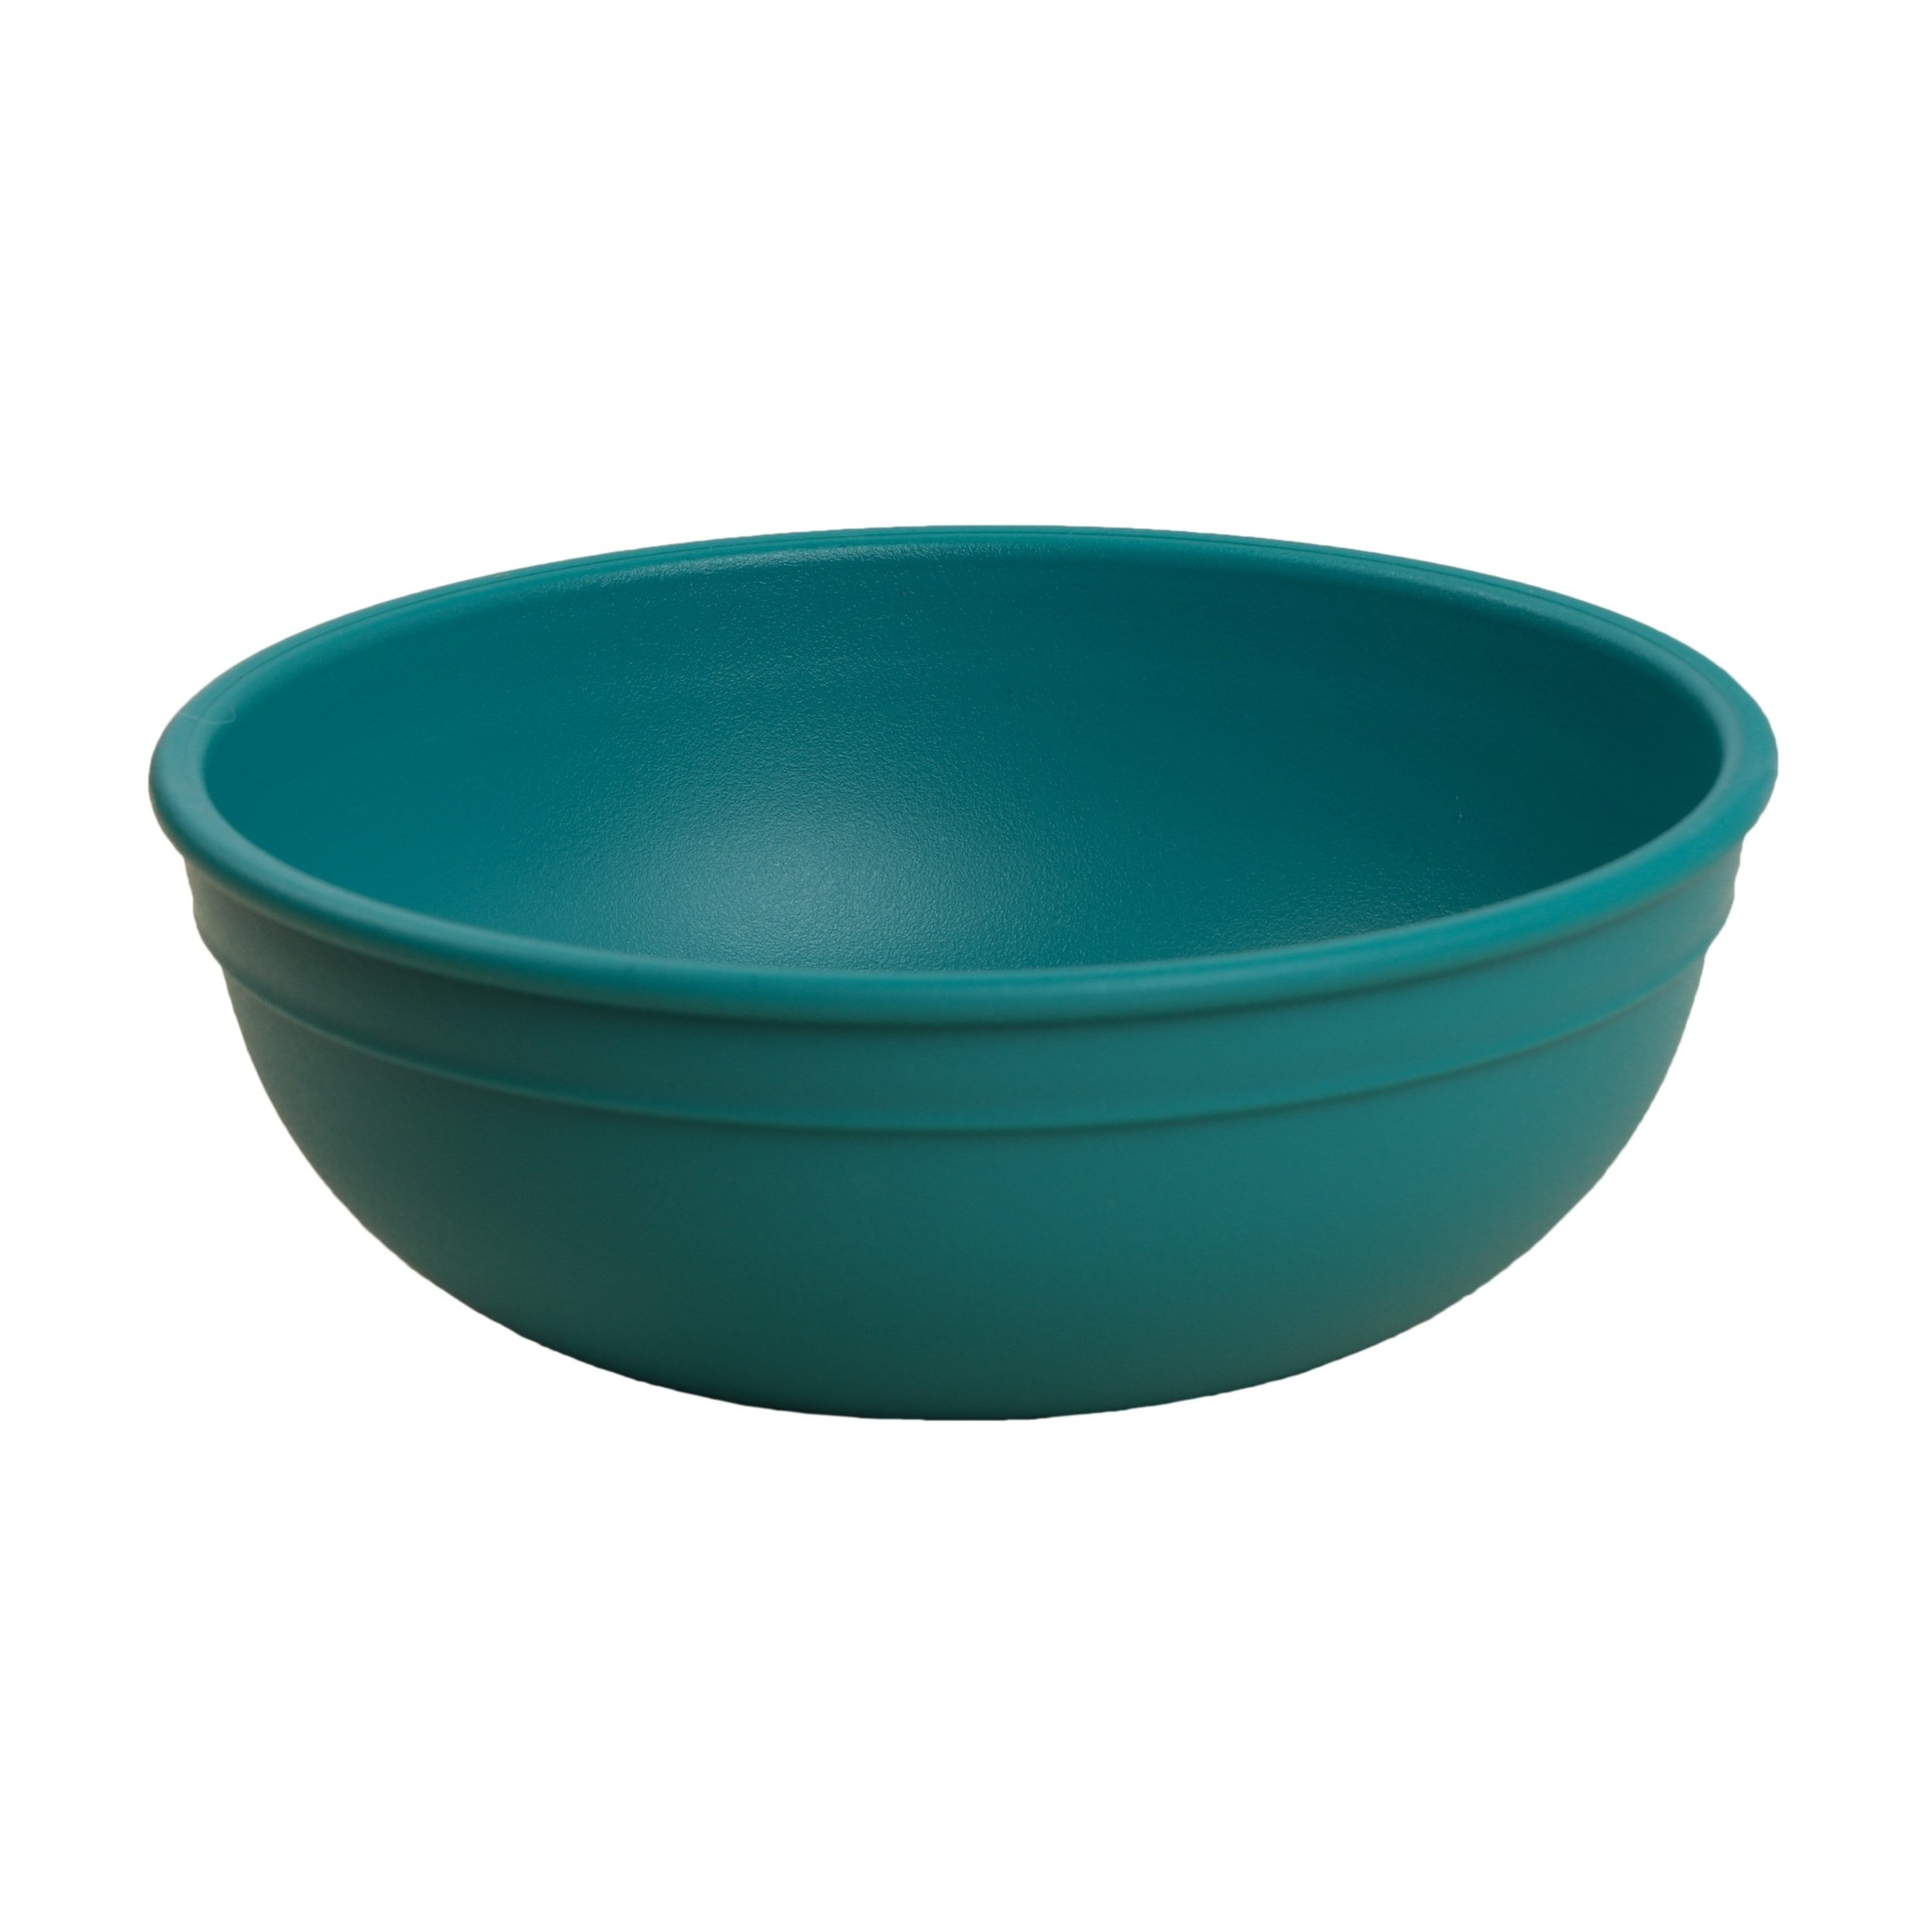 Re-Play Large Bowl - Teal